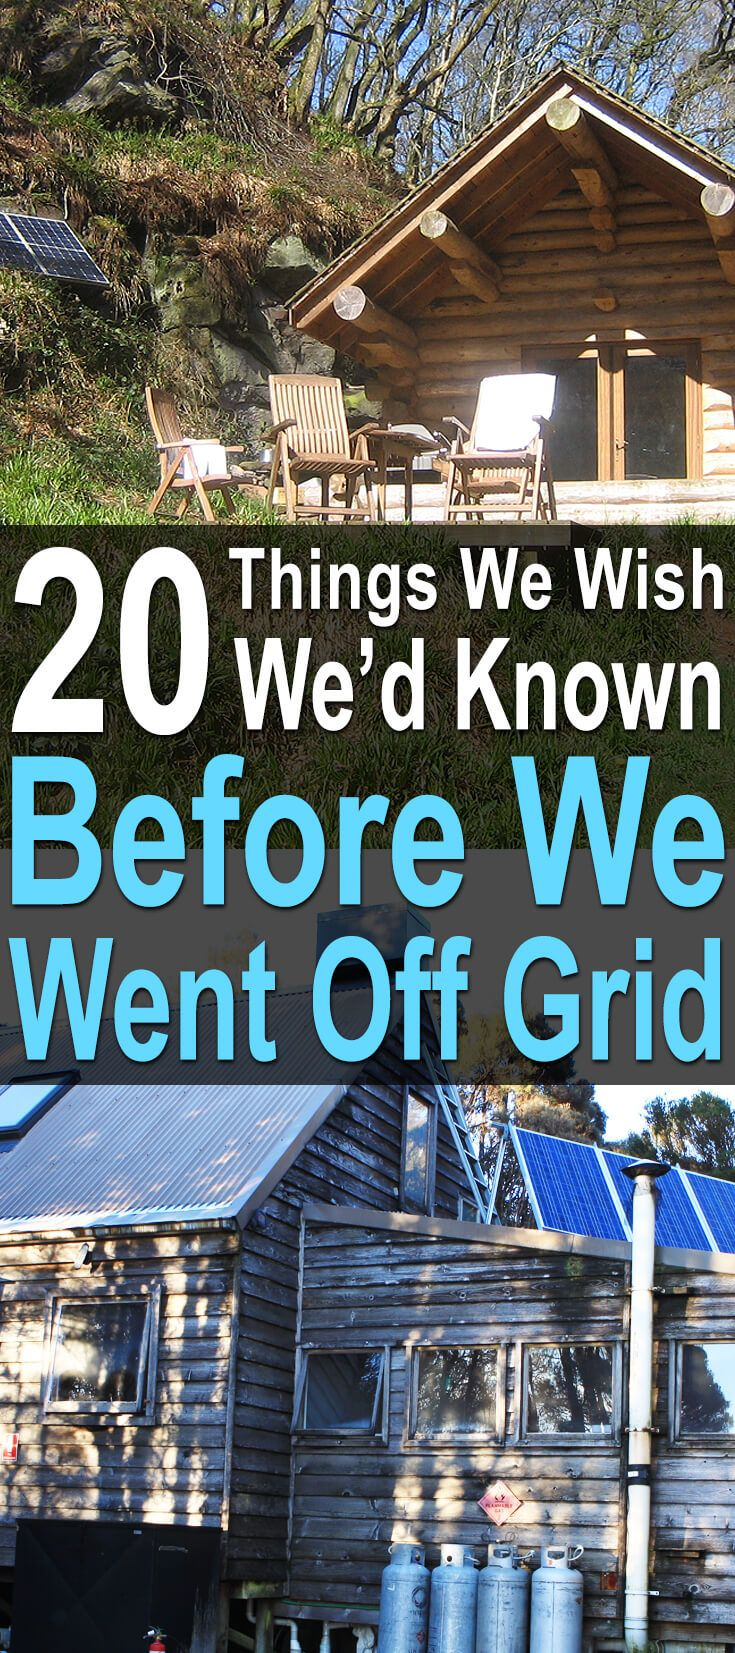 20 Things We Wish We'd Known Before We Went Off Grid